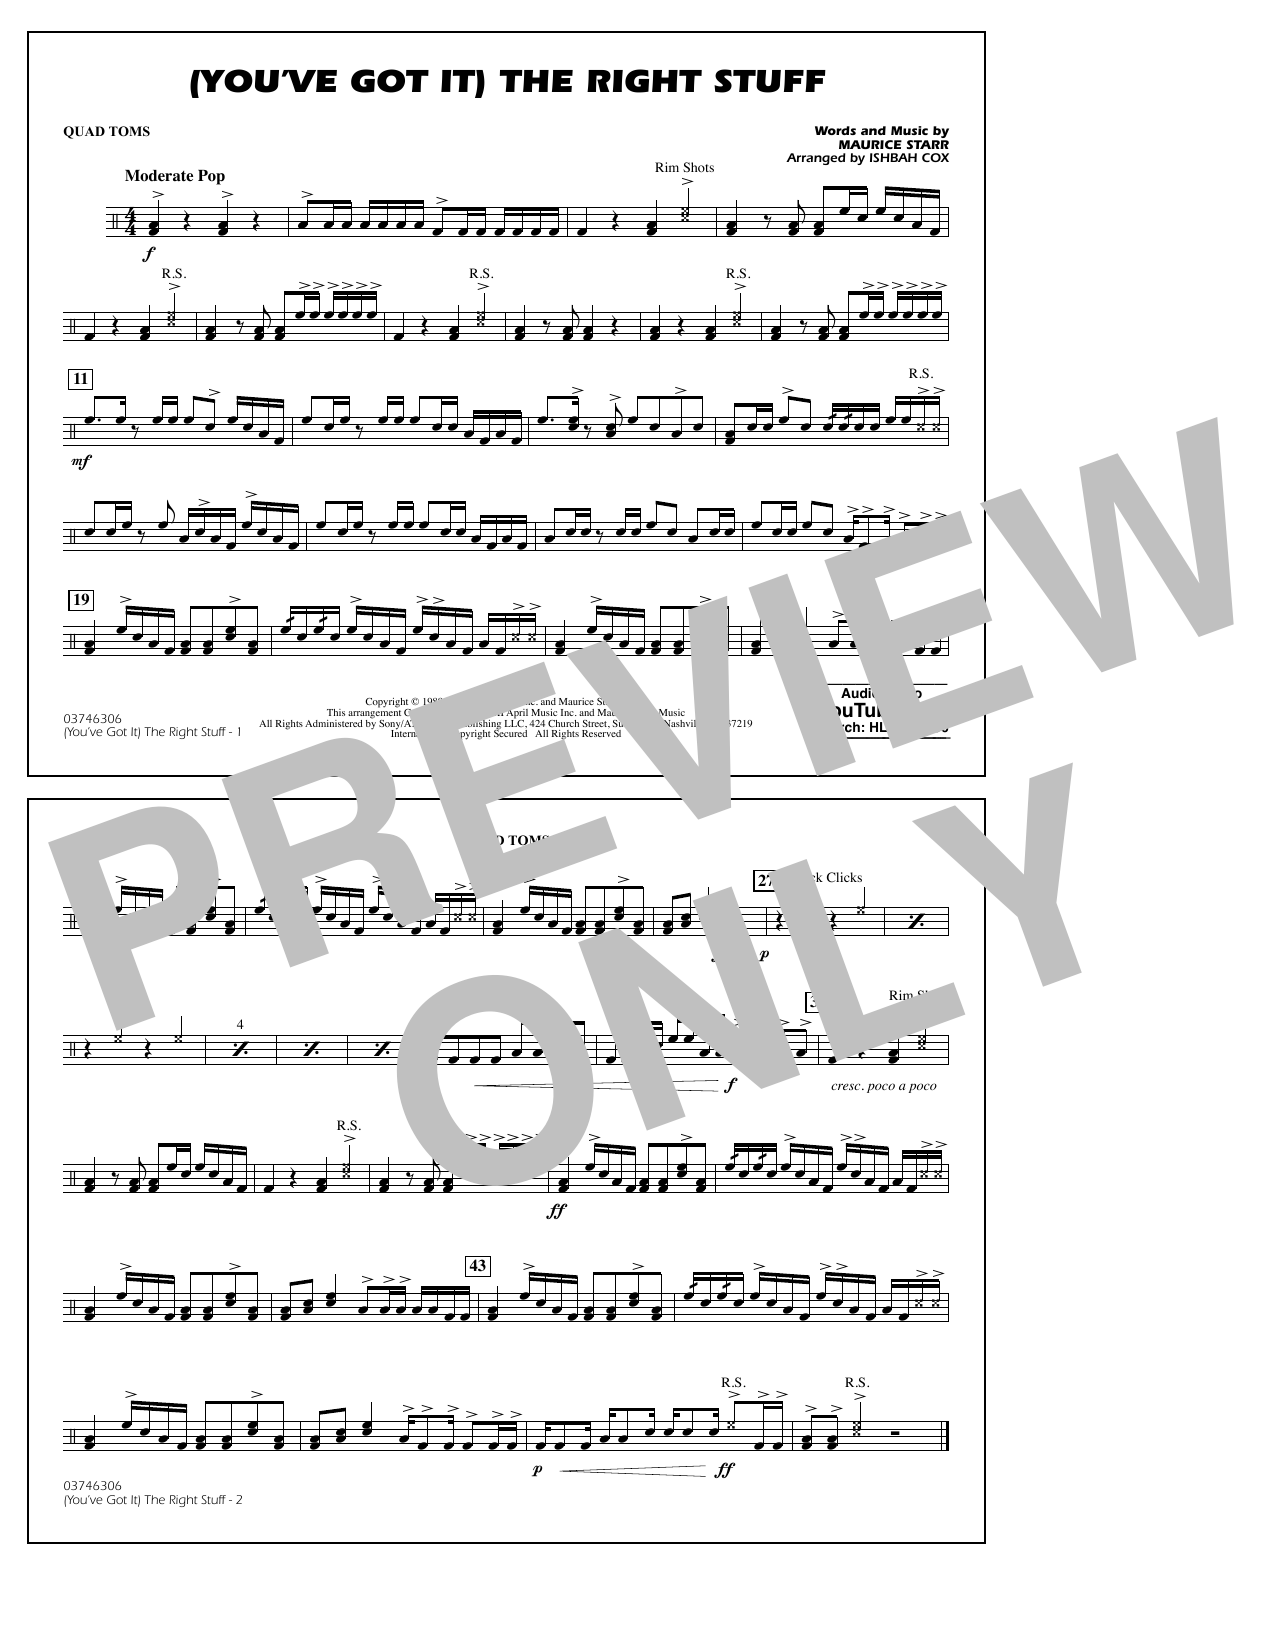 New Kids On The Block (You've Got It) The Right Stuff (arr. Ishbah Cox) - Quad Toms sheet music preview music notes and score for Marching Band including 1 page(s)